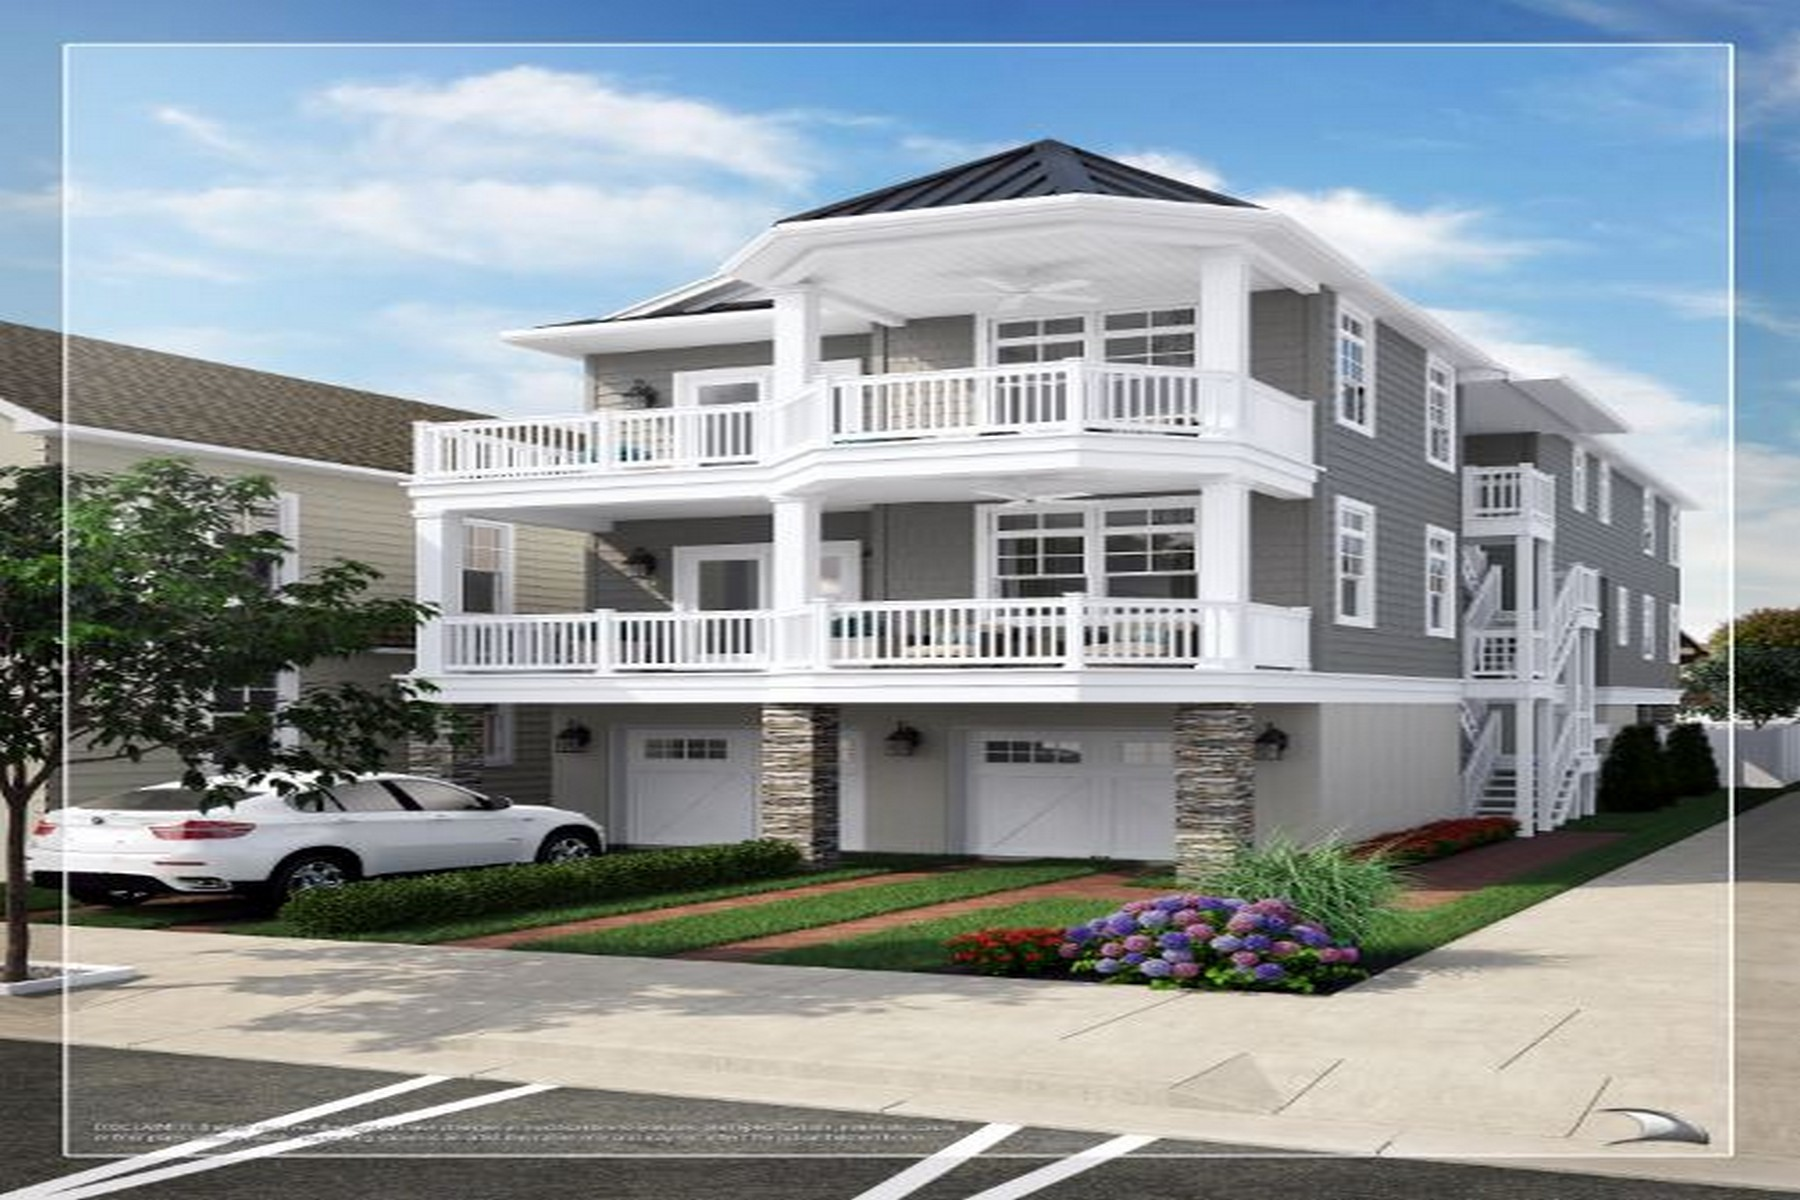 townhouses for Sale at 11 S Madison Ave Margate, New Jersey 08402 United States